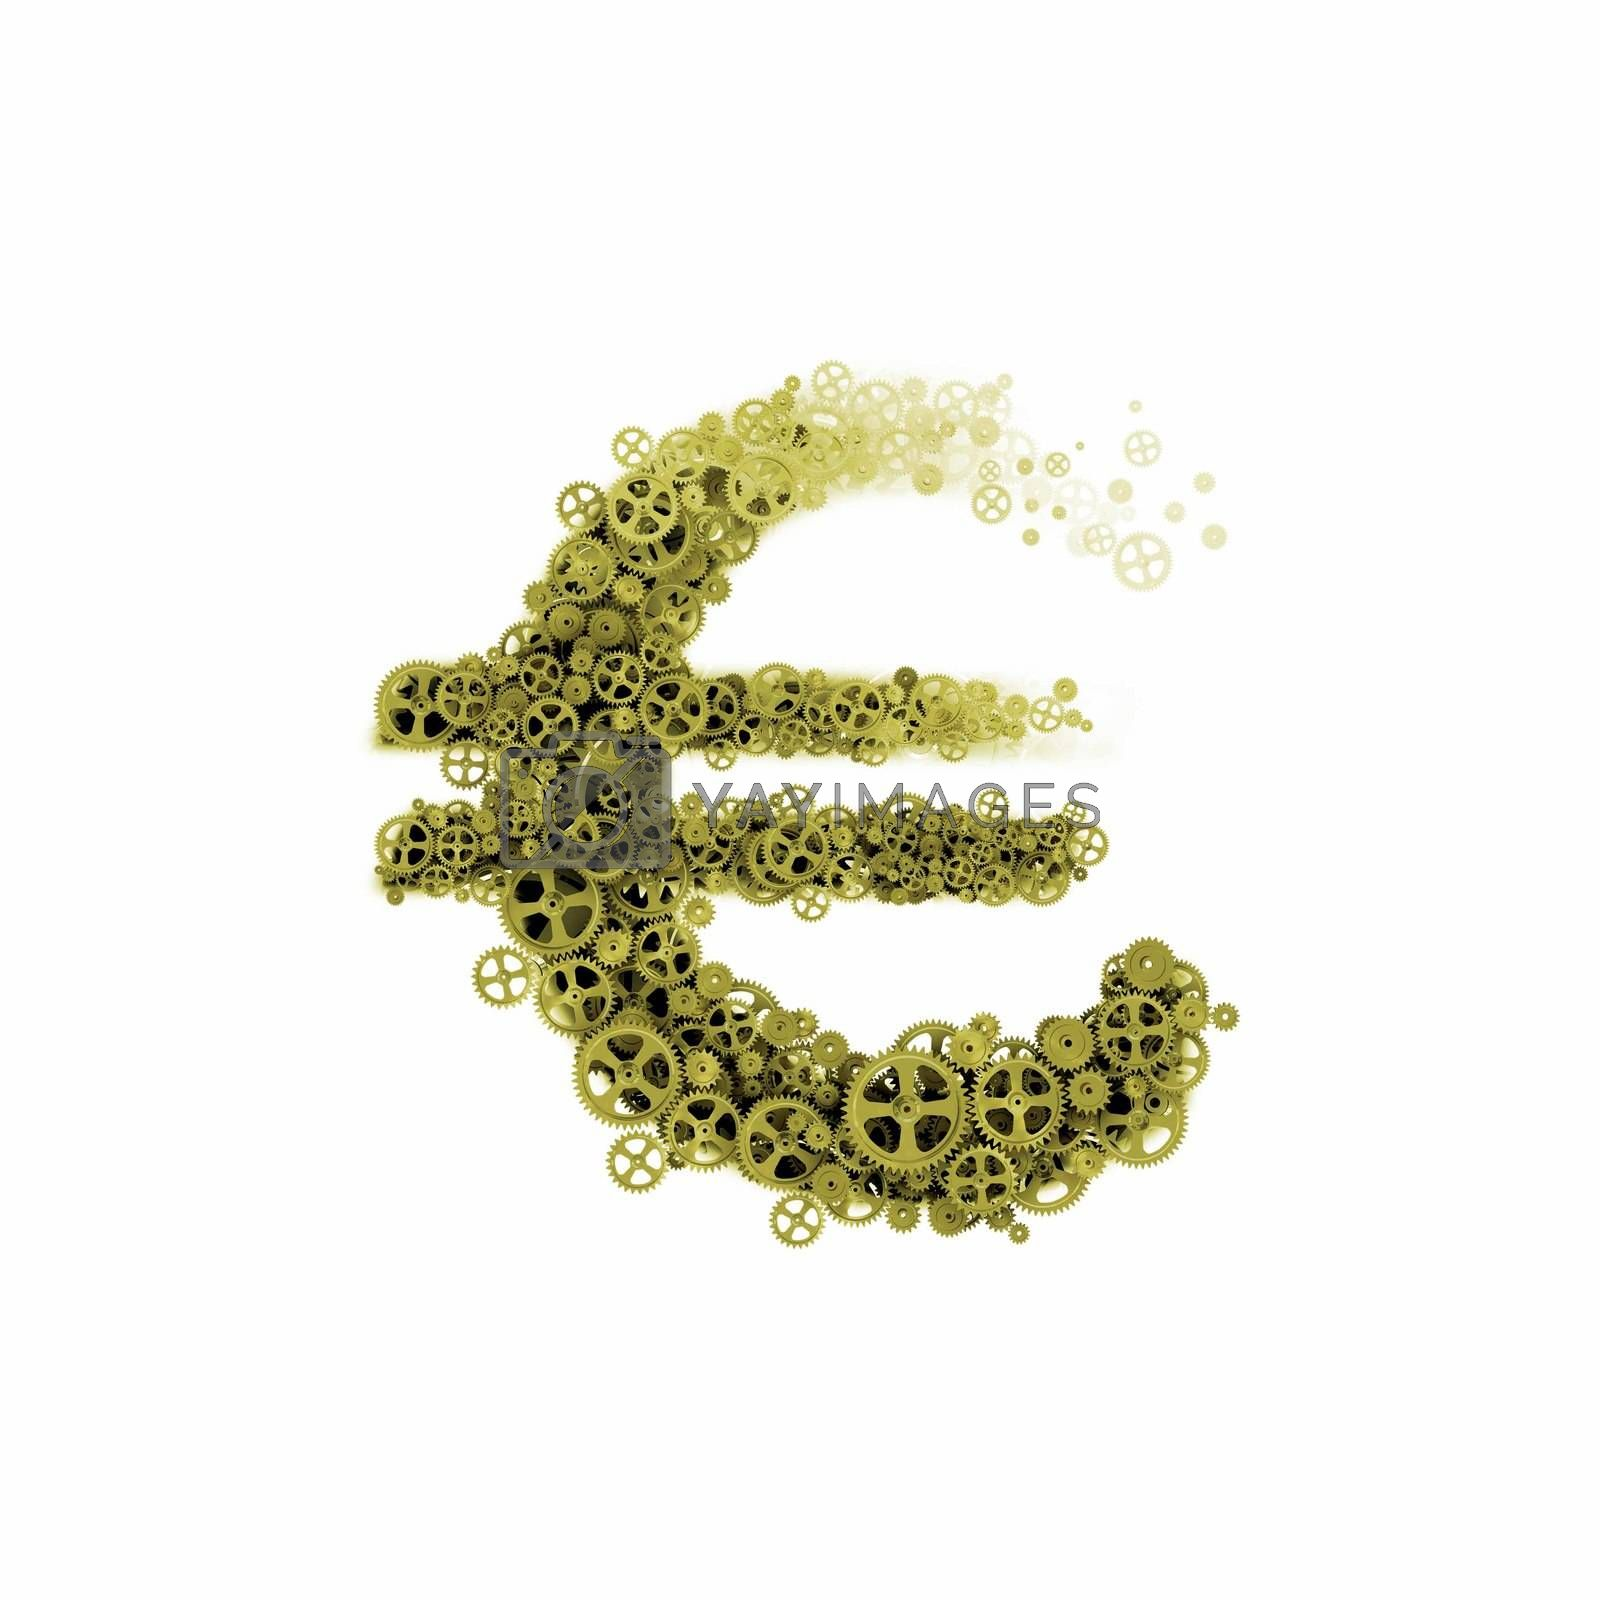 Image of euro symbol made of gears and cogwheels